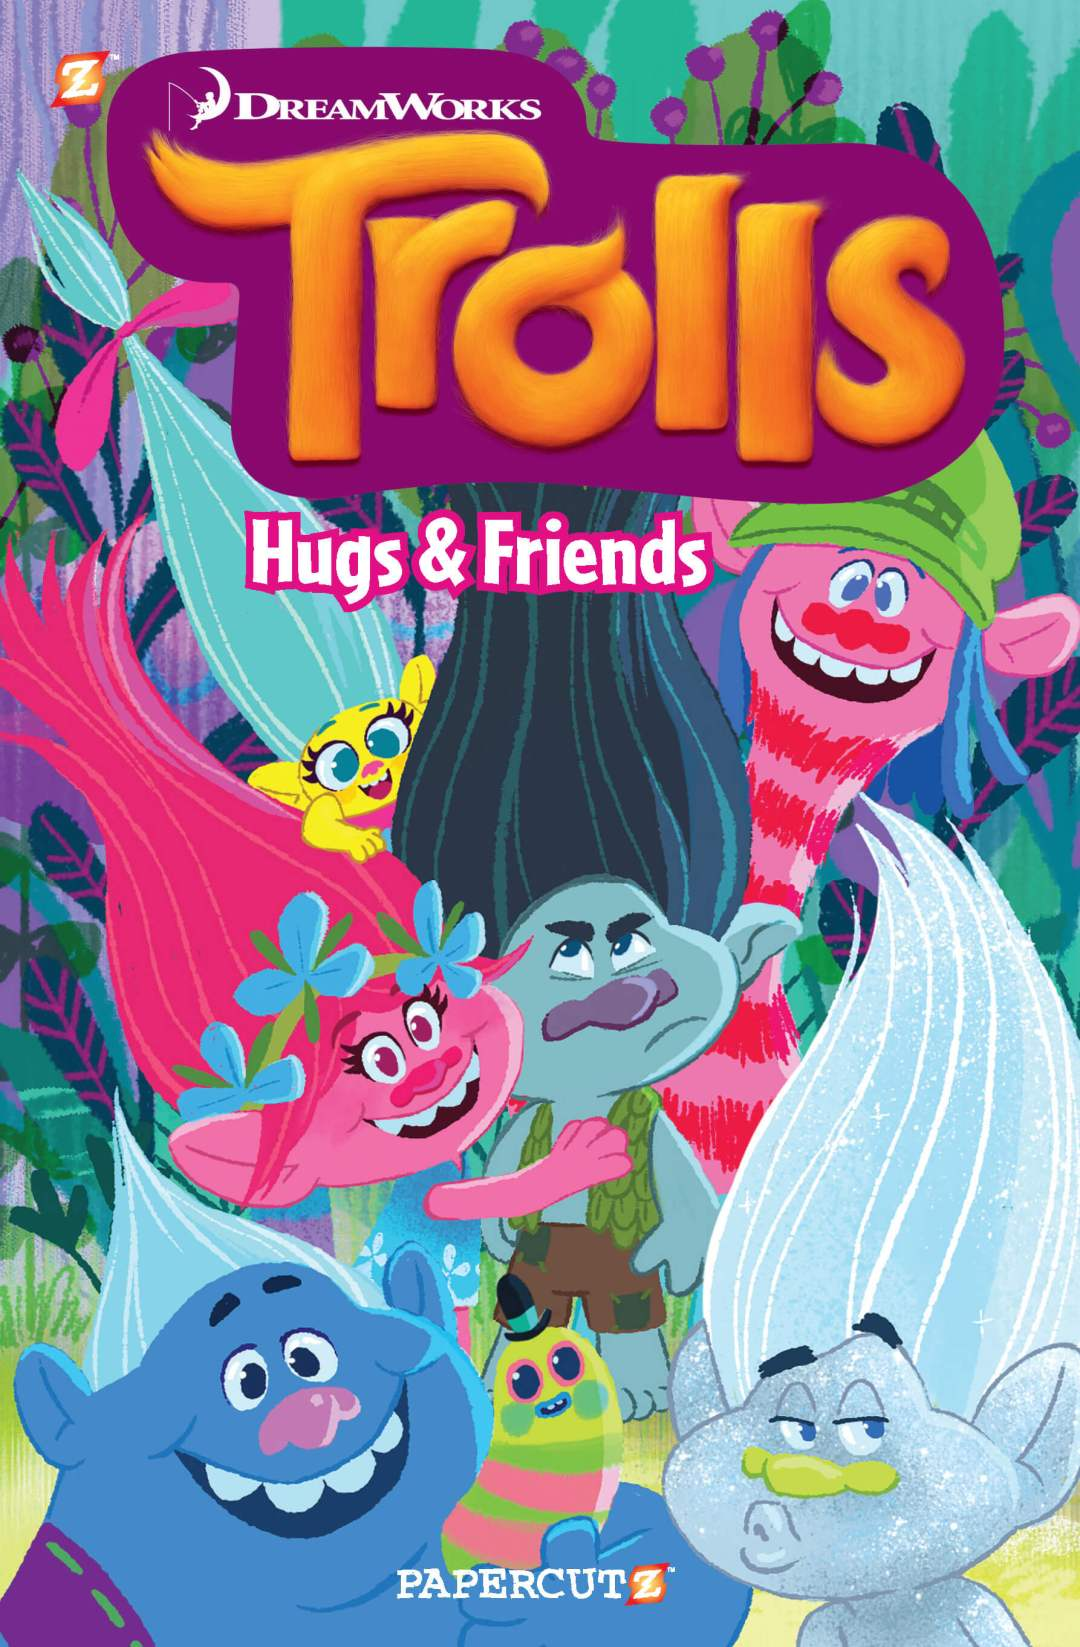 Cover to Trolls #1